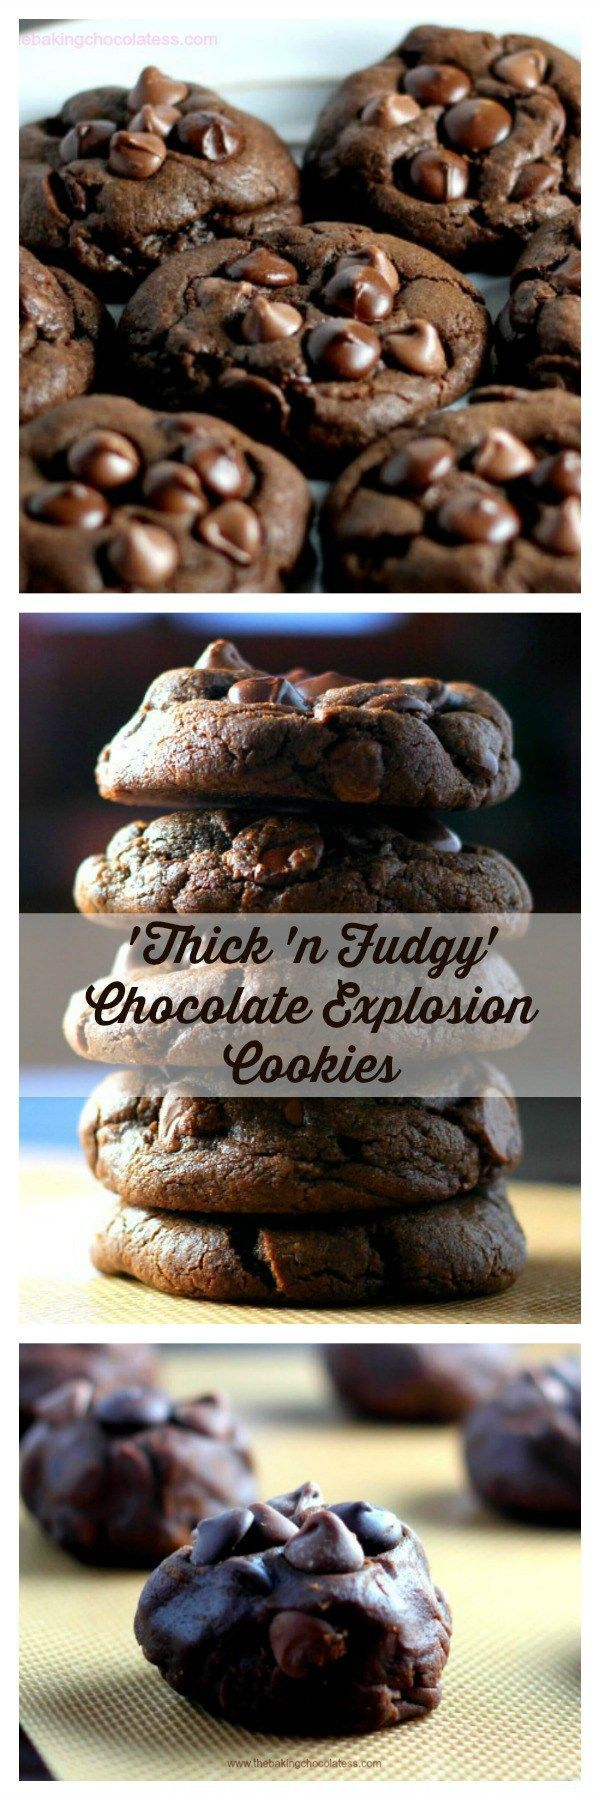 'Thick 'n Fudgy' Chocolate Explosion Cookies | Posted By: DebbieNet.com